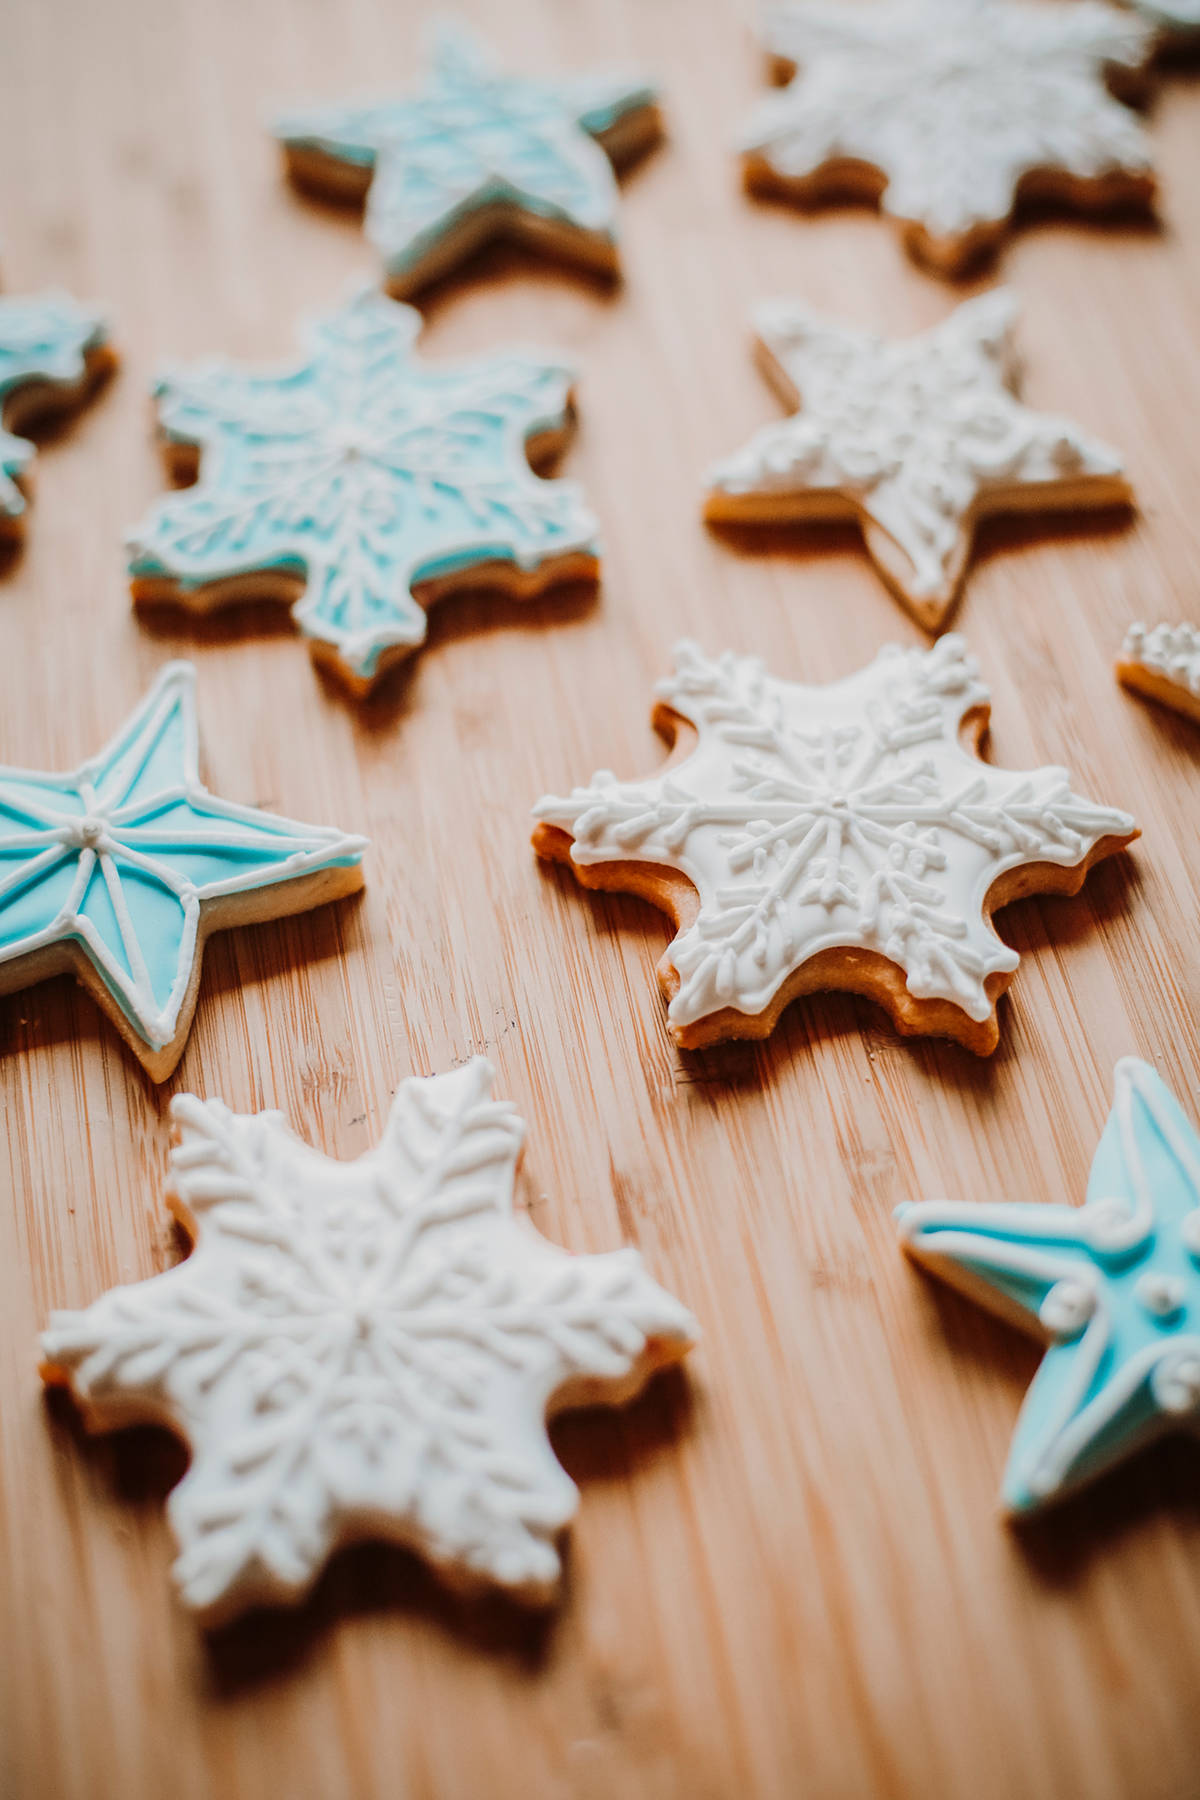 Snowflake cookies